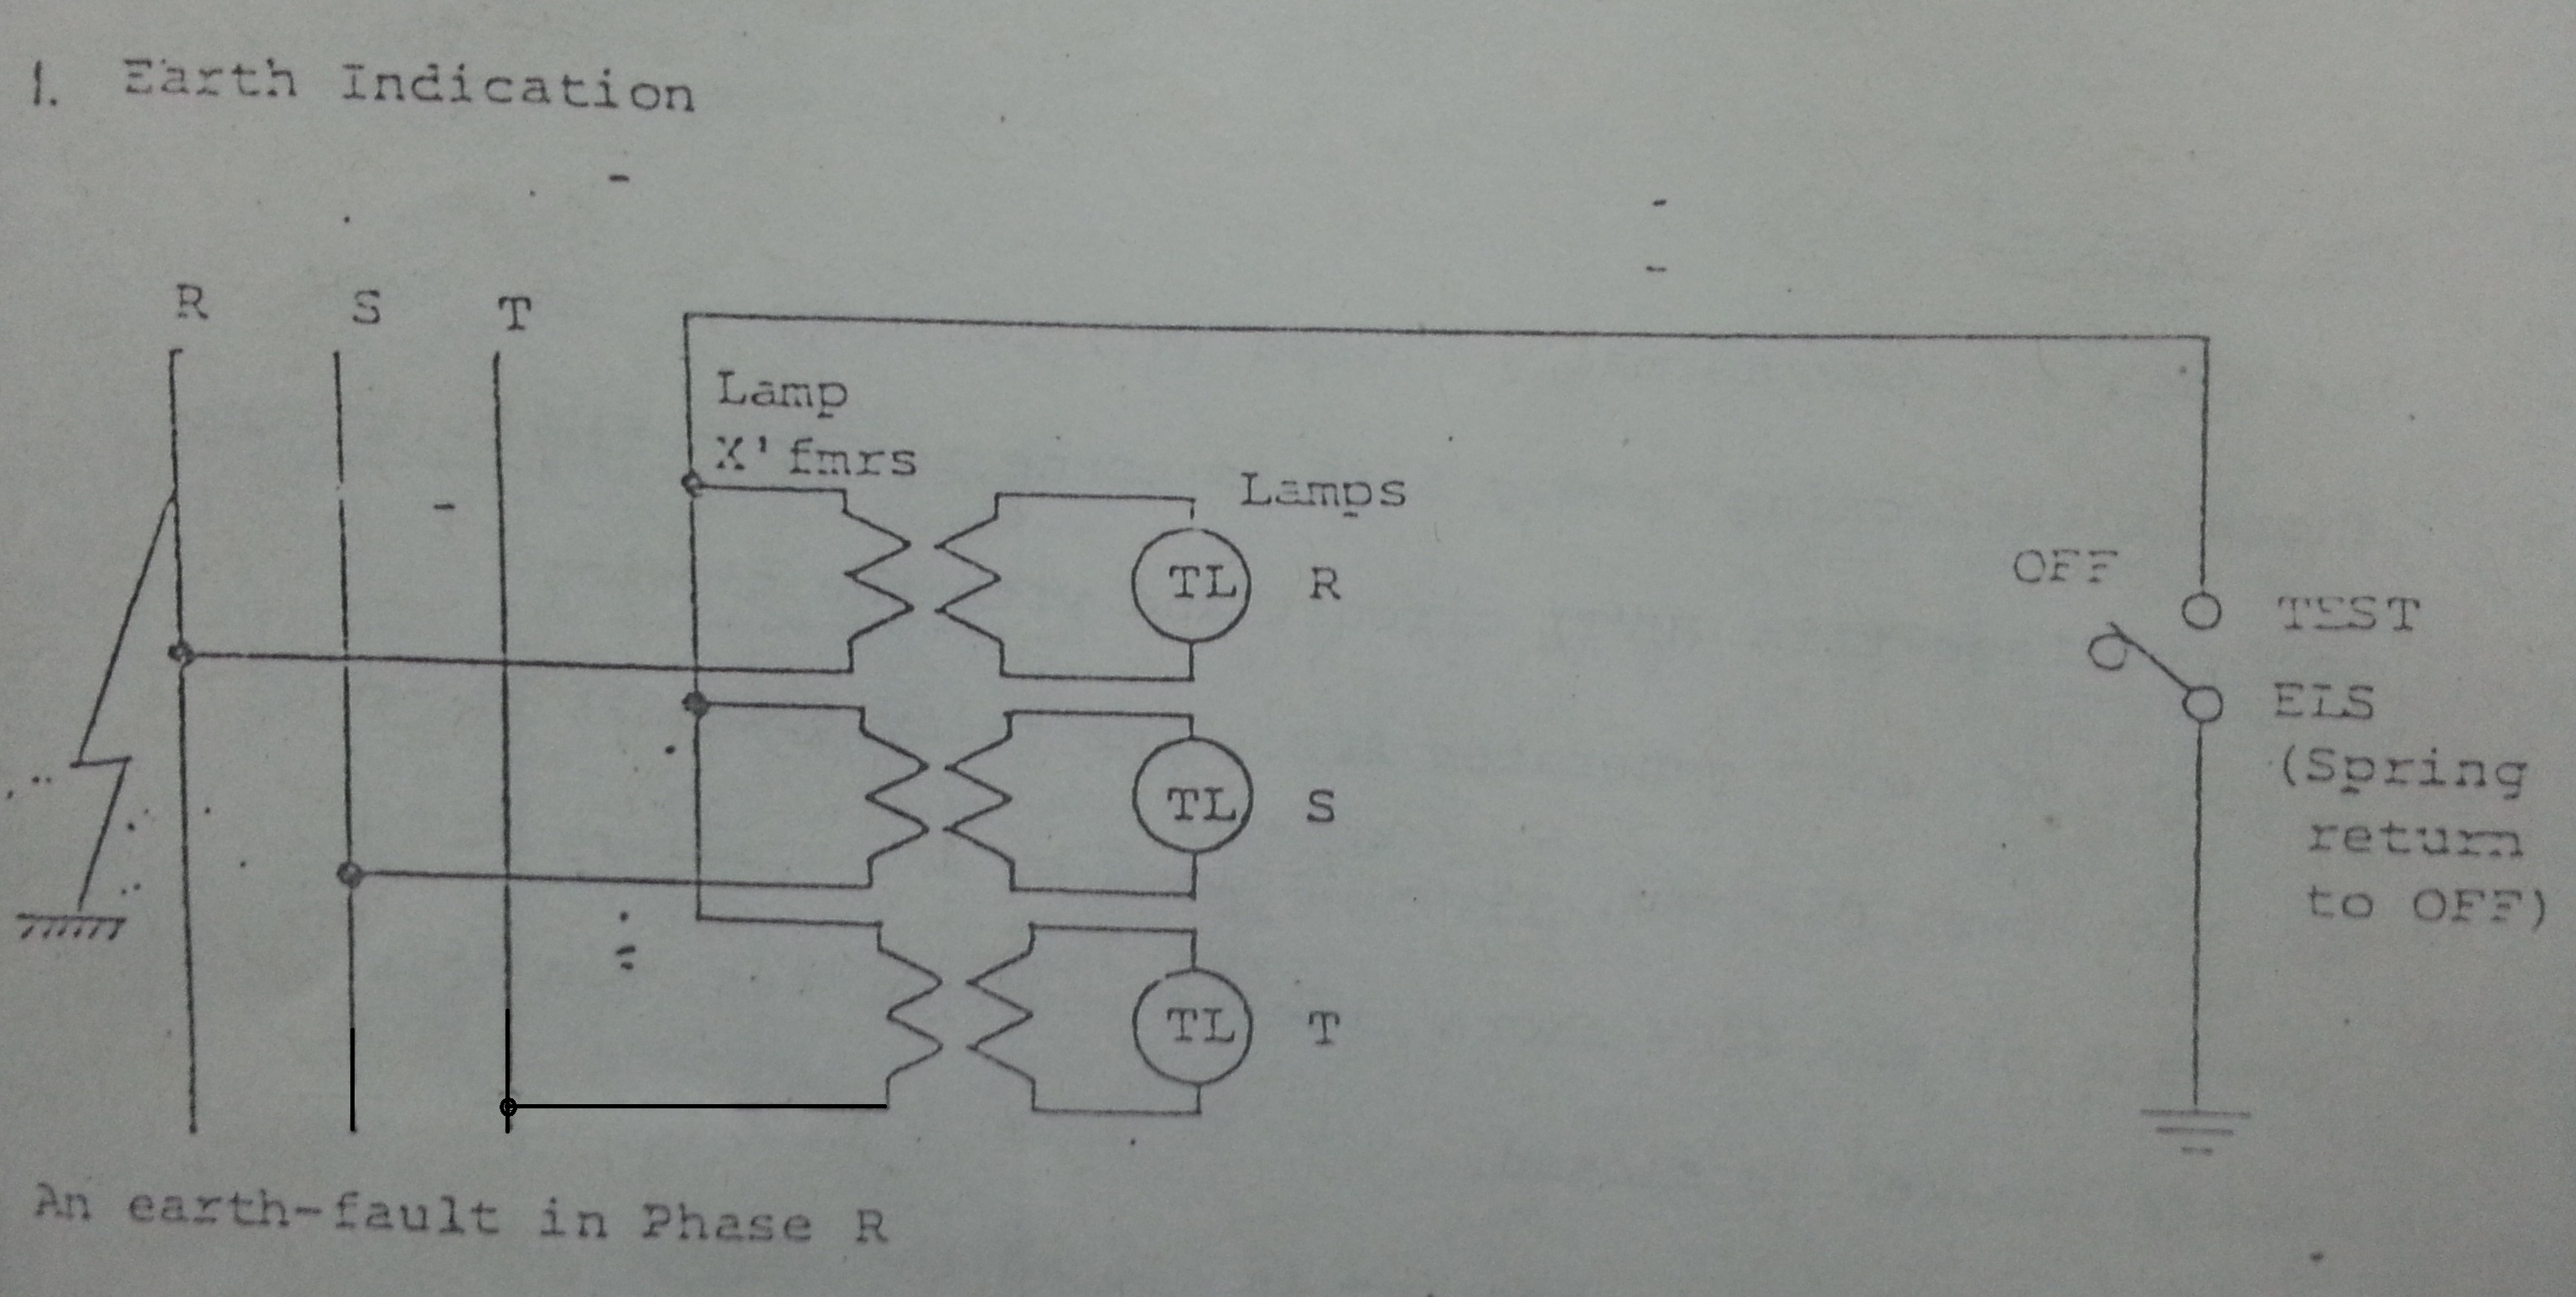 Ground Fault Indicator Light Wiring Diagram Archive Of Automotive Images Gallery Earth Circuit In Ships Rh Marineengineeringonline Com